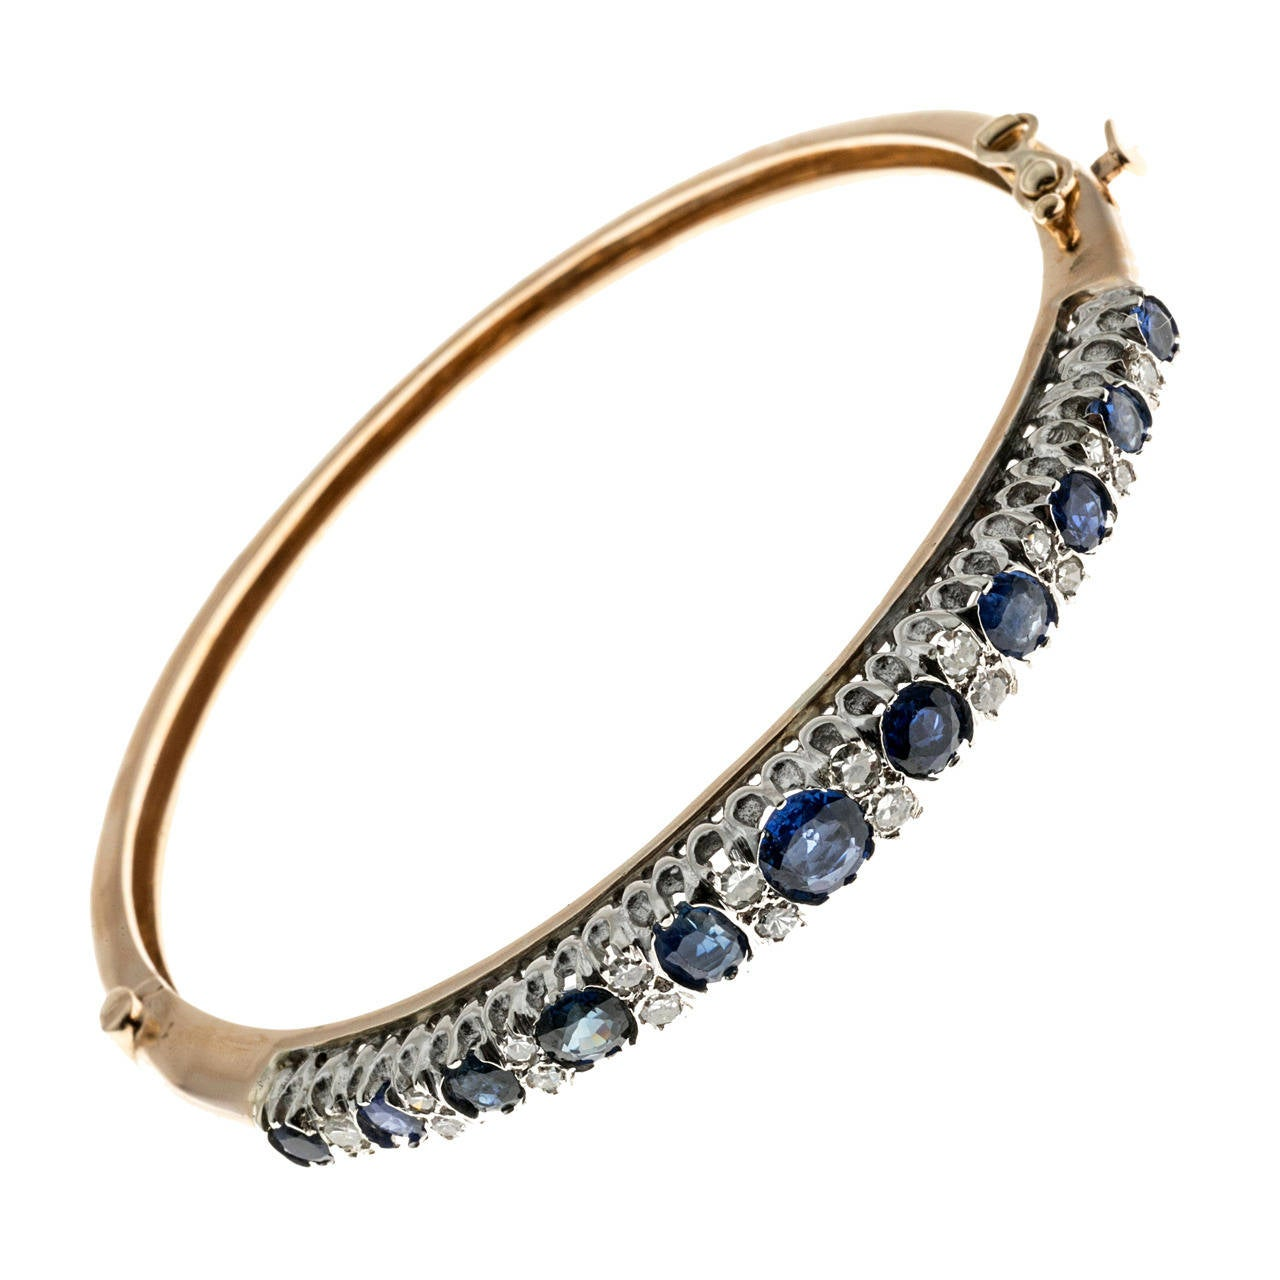 Natural Sapphire Diamond Gold Bangle Bracelet For Sale At